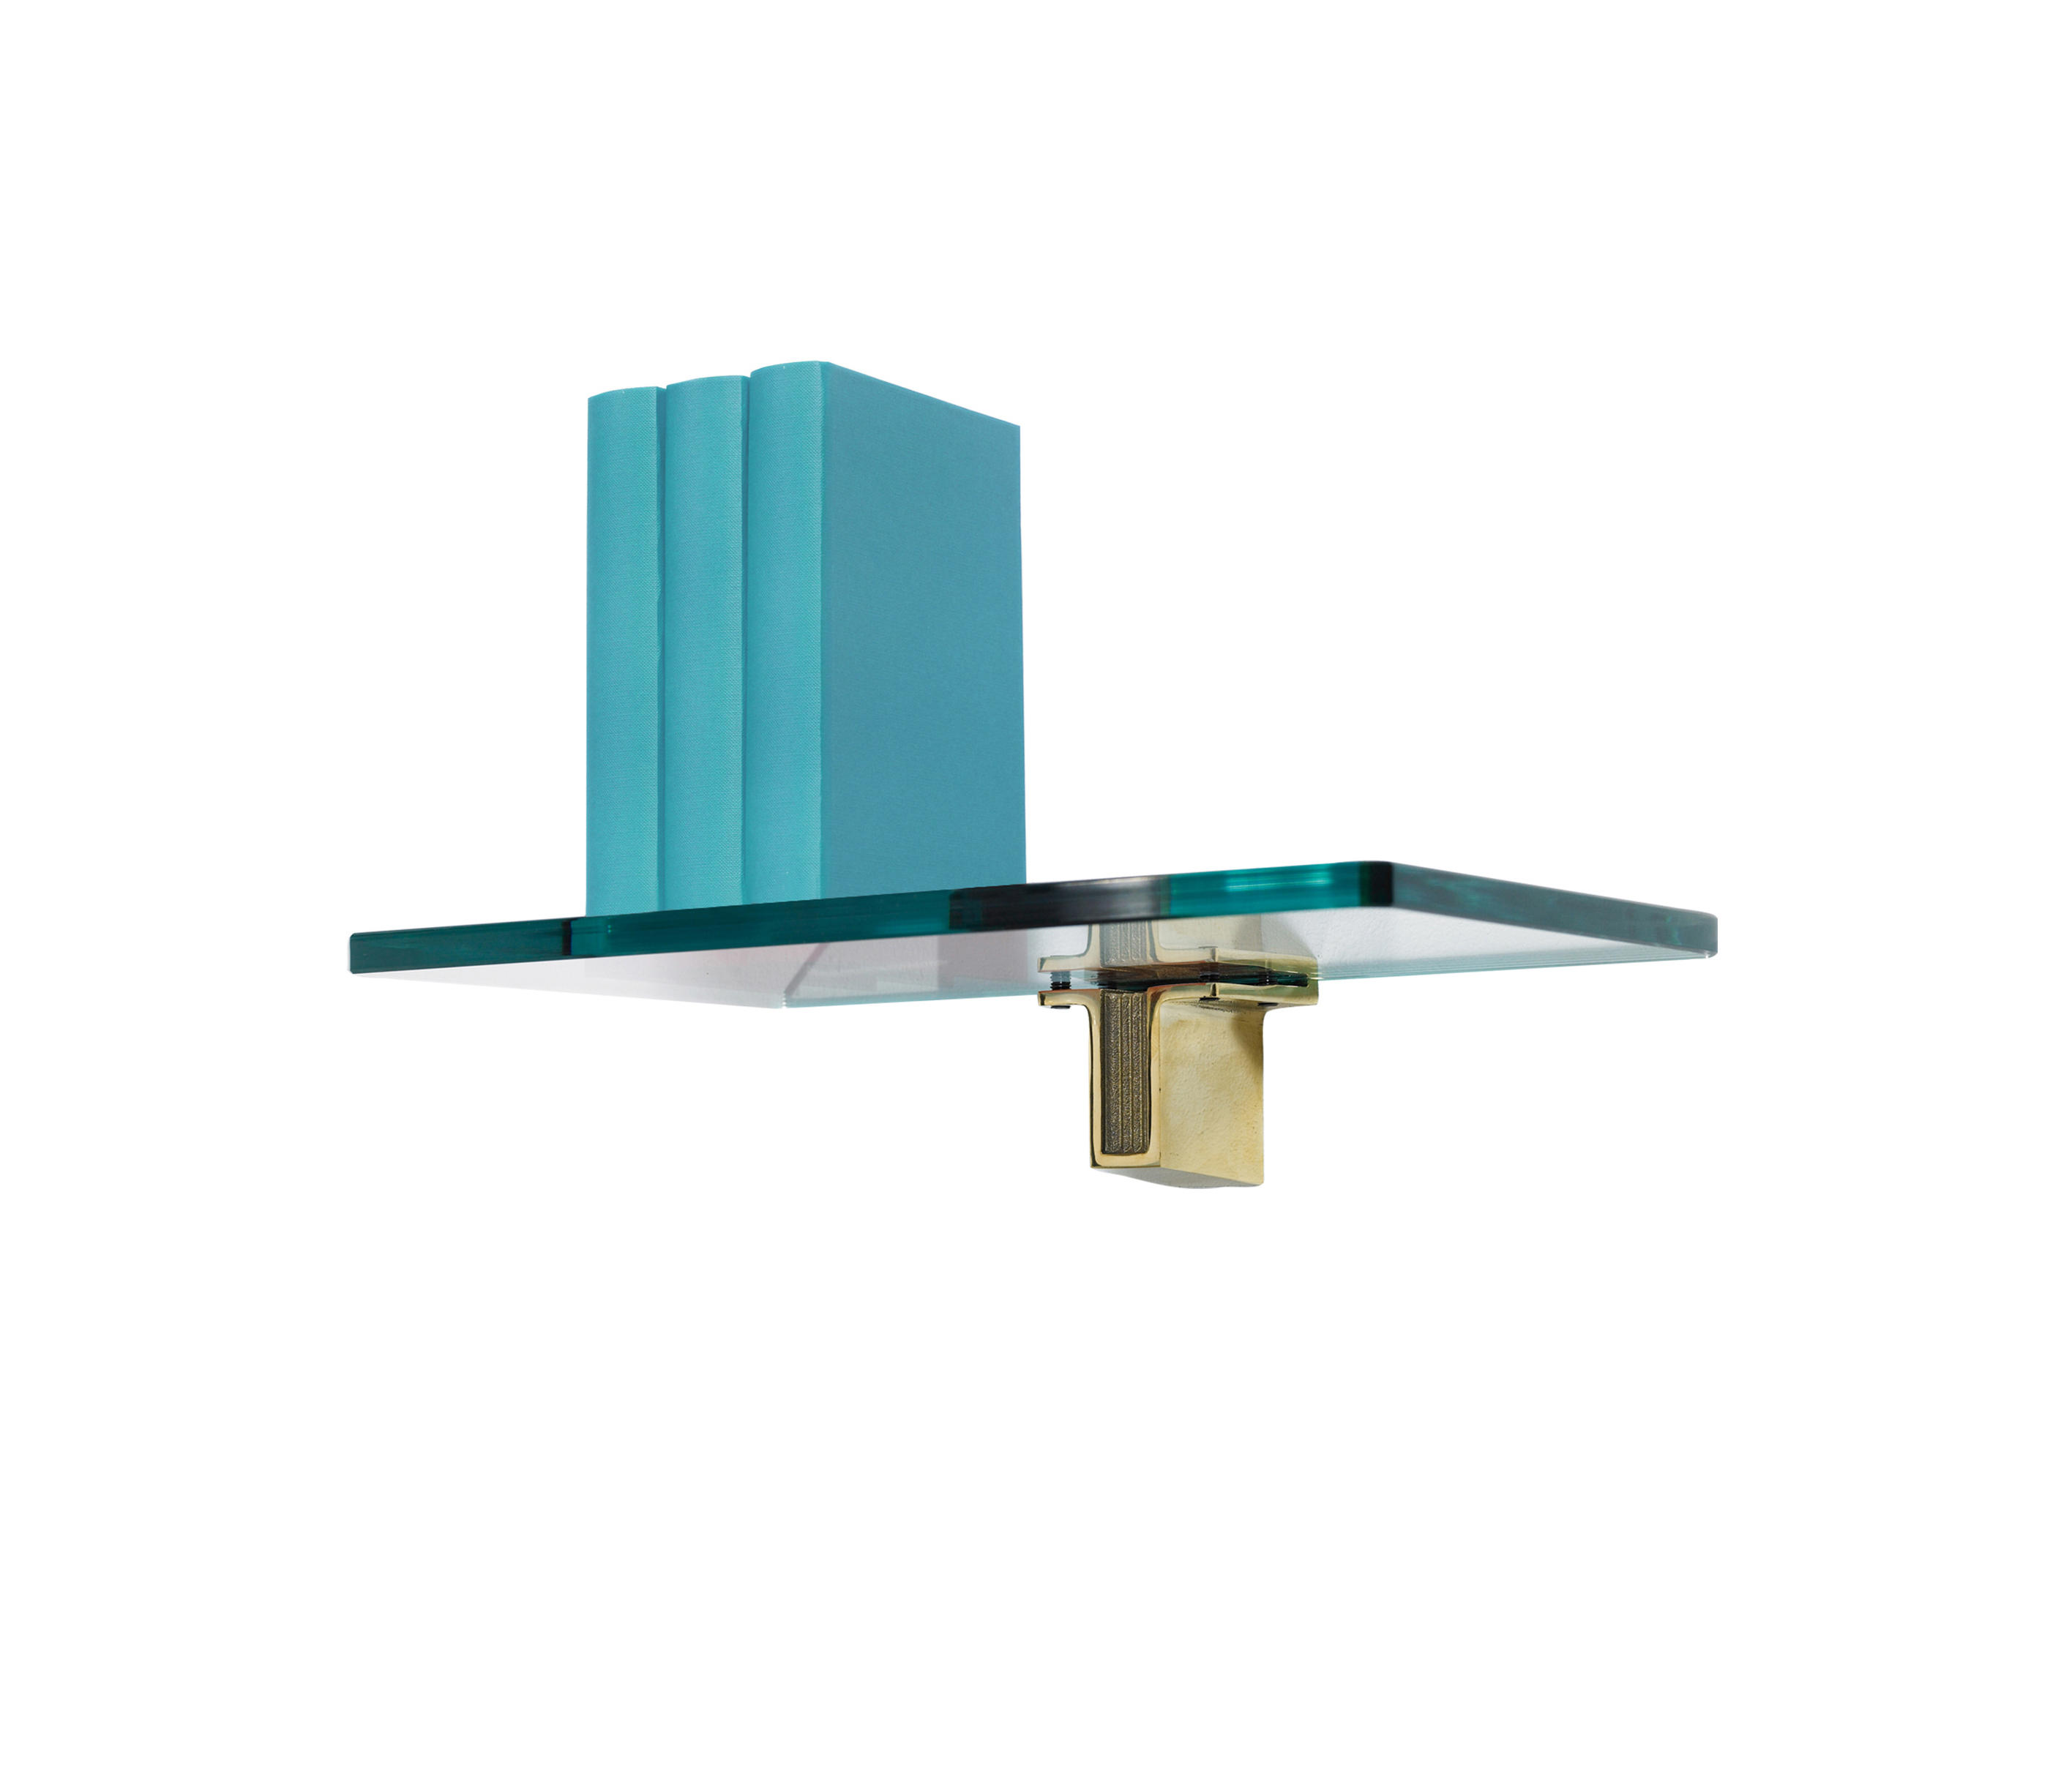 PIONEER R14 WALL SHELF - Shelving from Ghyczy   Architonic